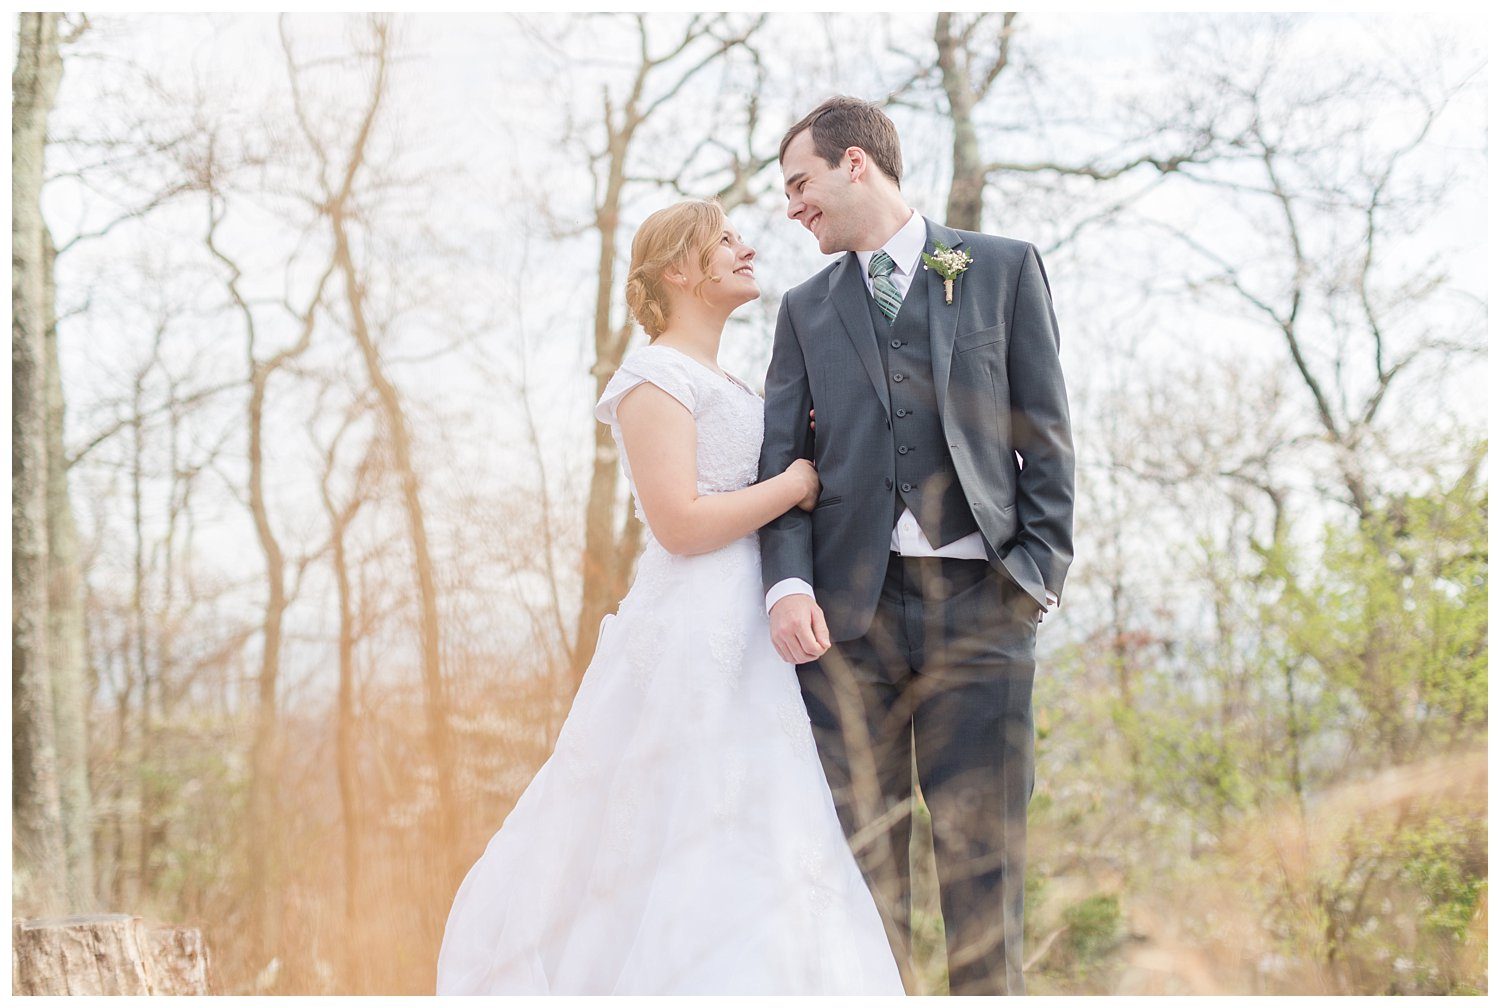 The Tea Room at Gambrill State Park Wedding Photographer  by elovephotos